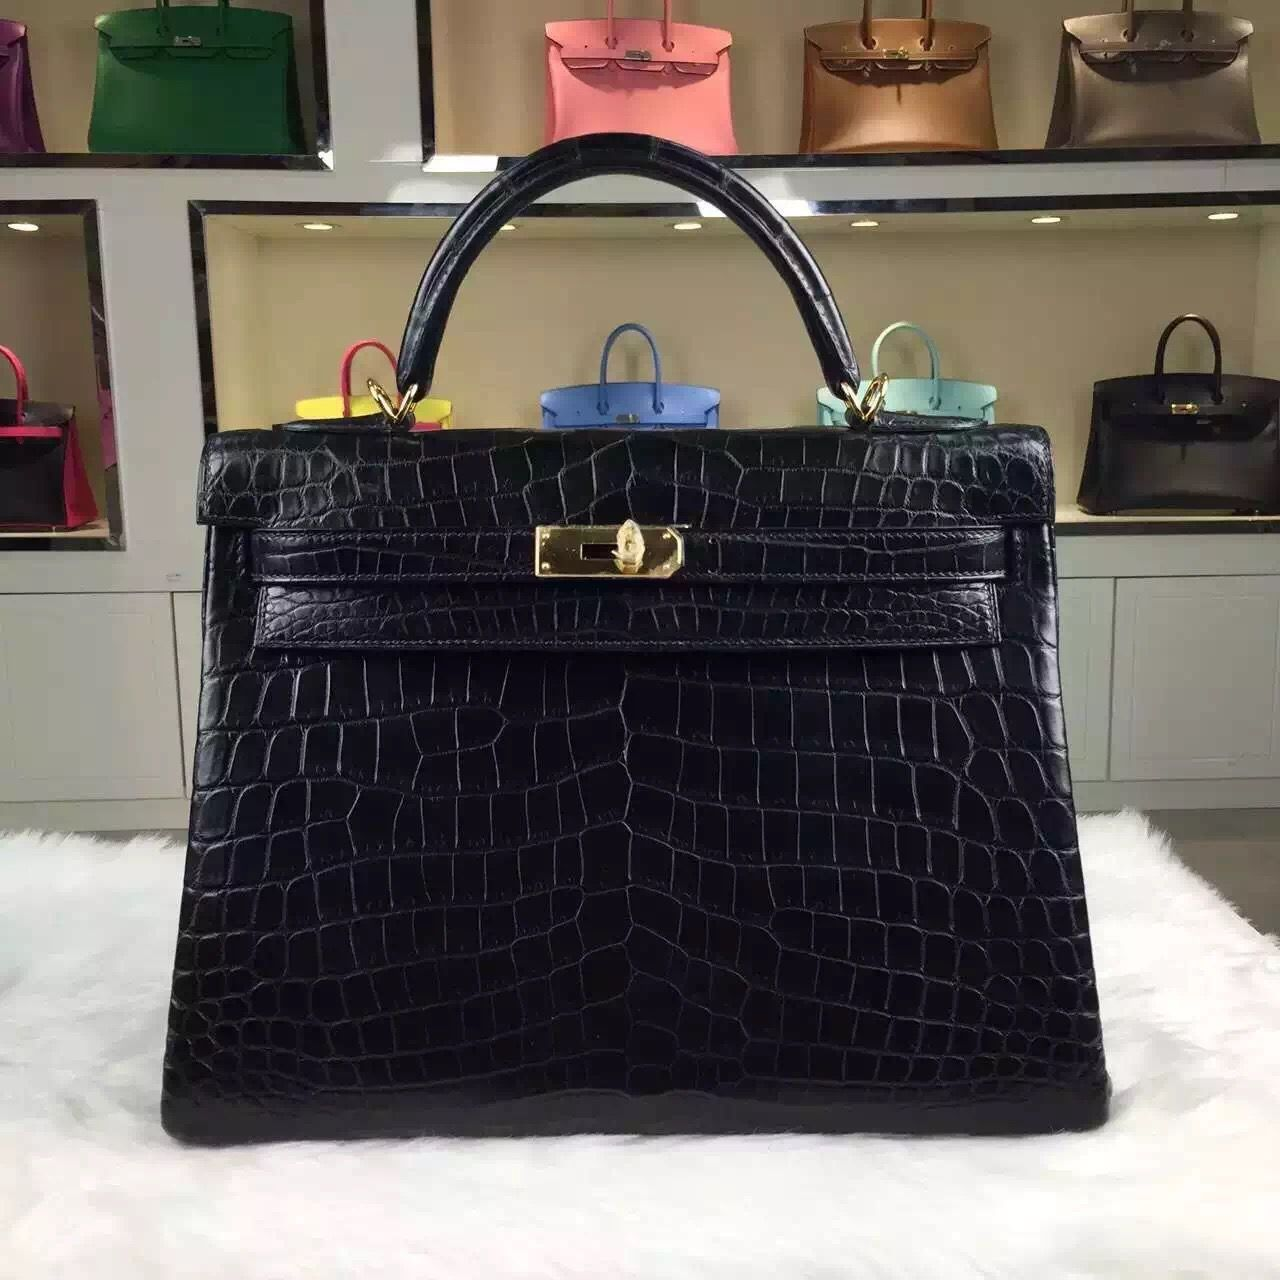 2d98890b43 Brand  Hermes  Style  Kelly Bag 32CM   Material  Crocodile matt Leather(HCP  Original Leather)  Color  Black  Hardware  gold silver  Accessories   Padlock and ...